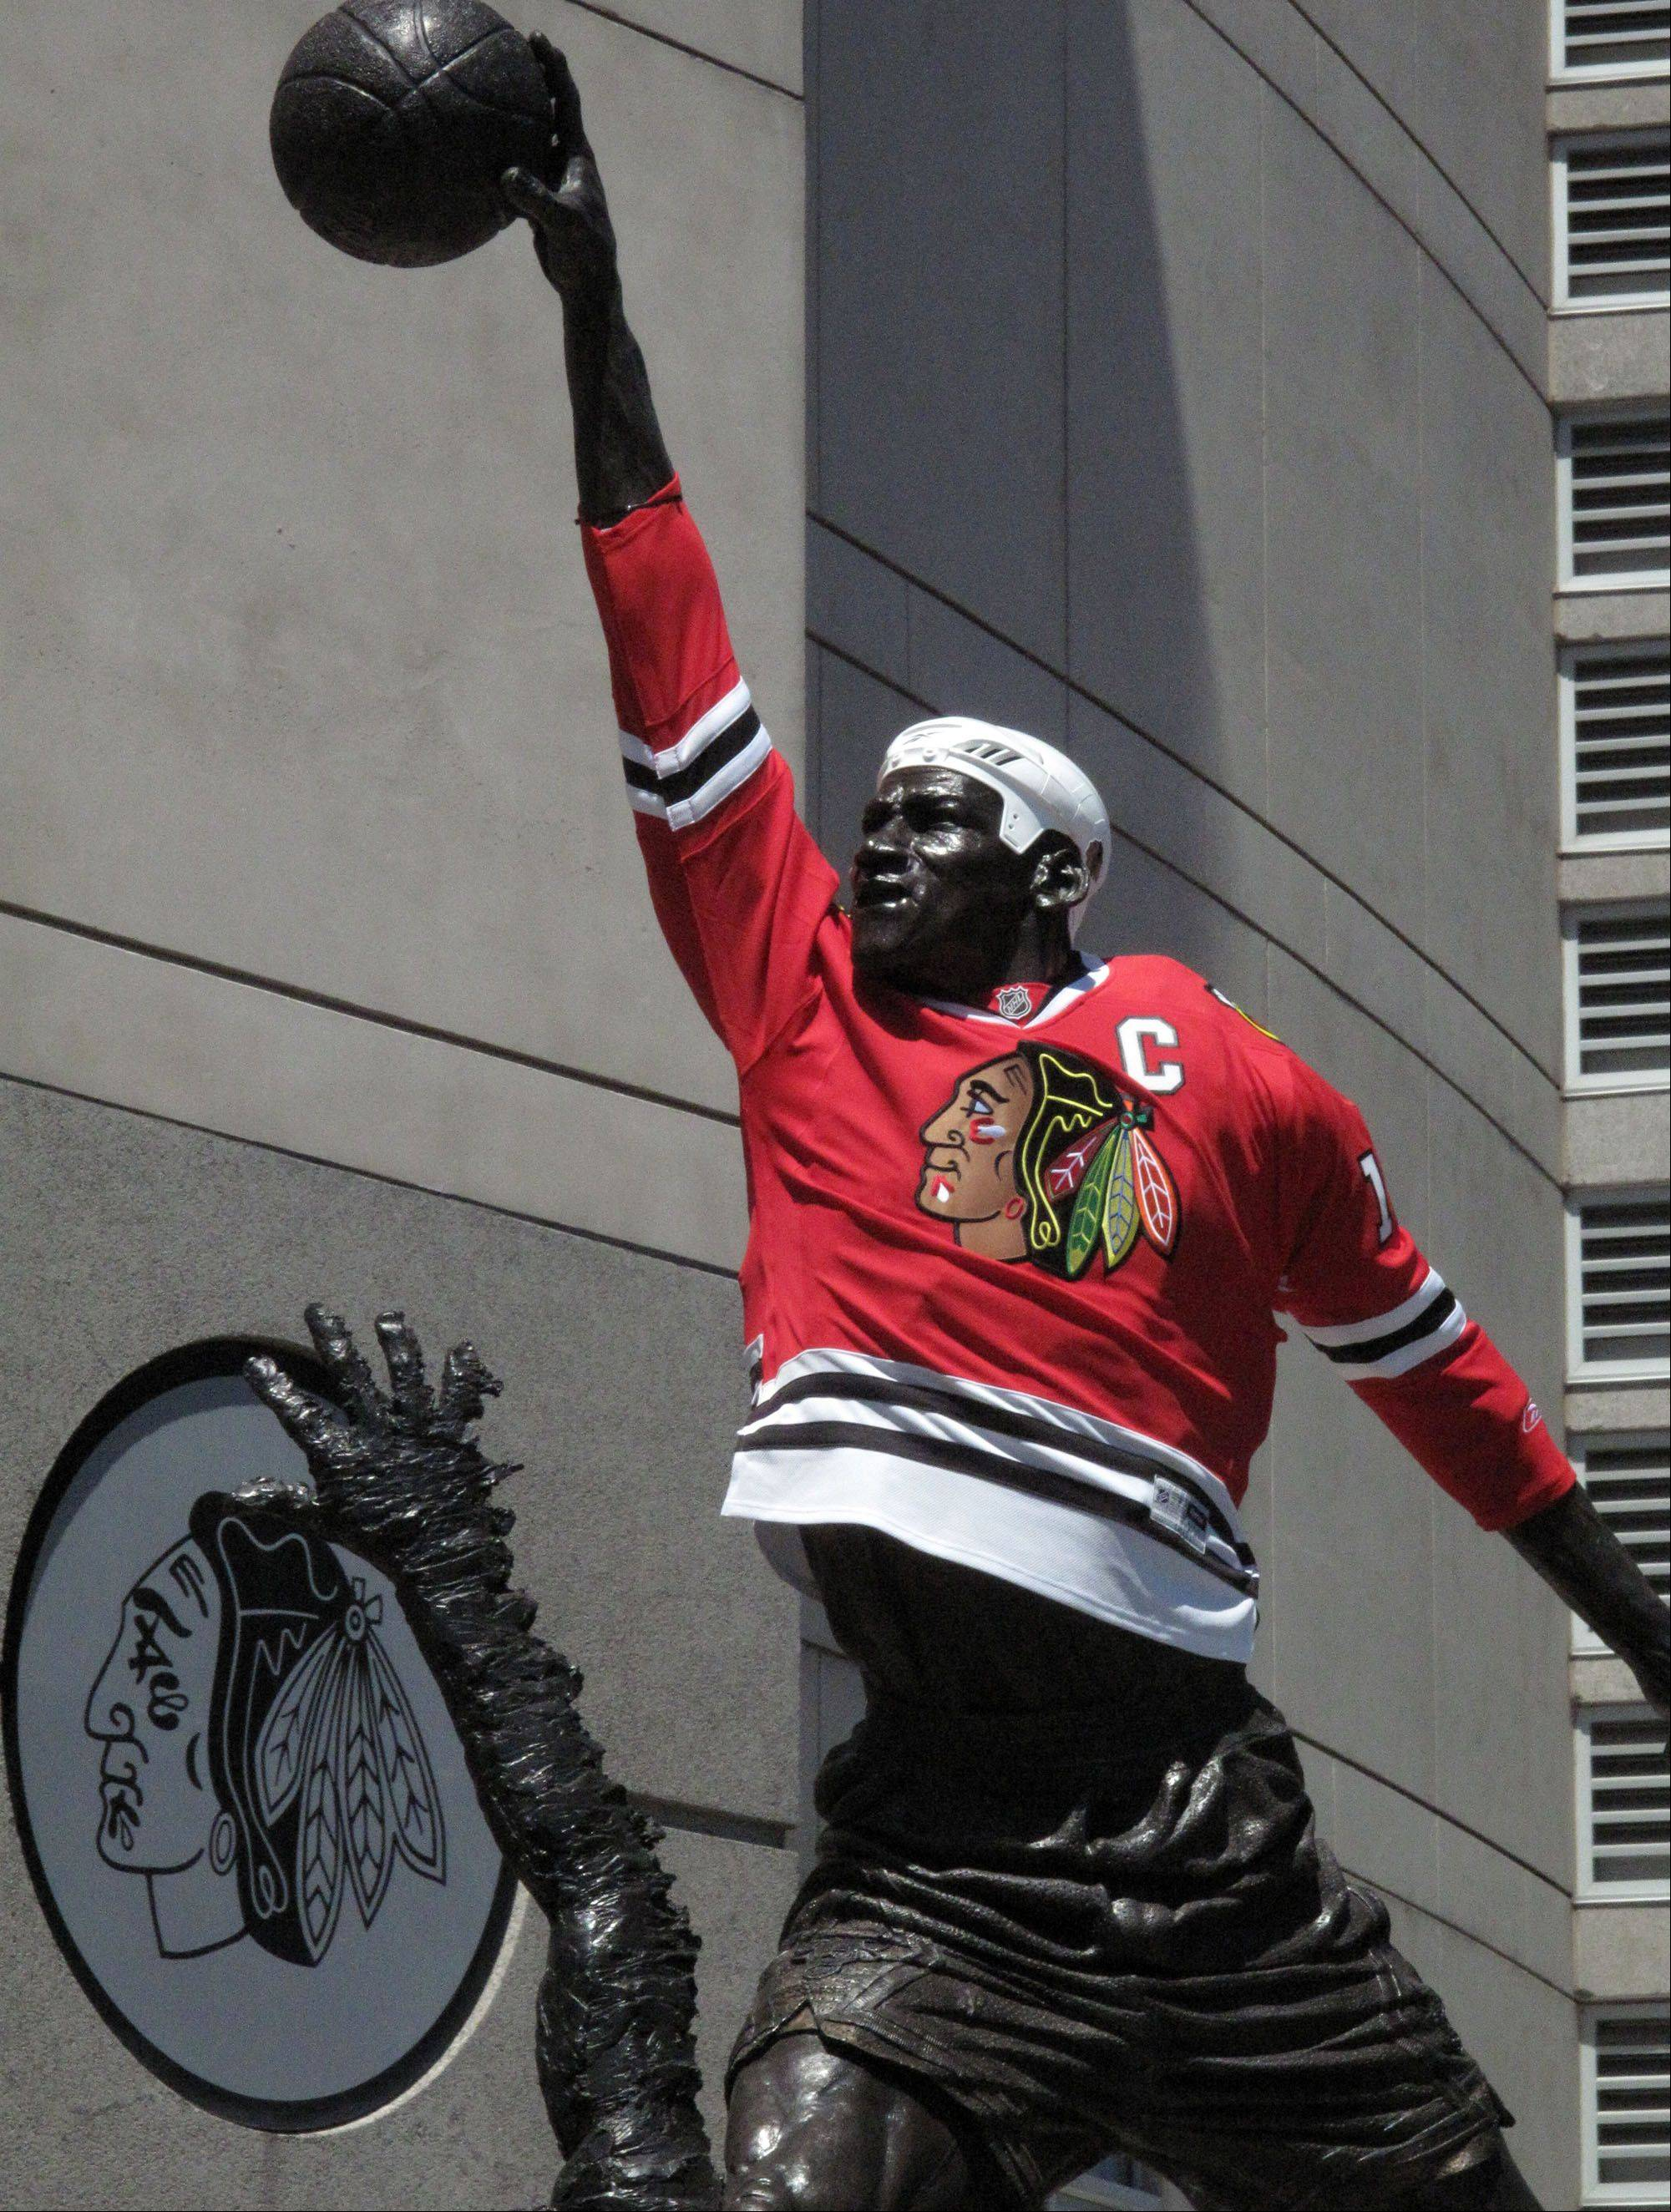 The Michael Jordan statue at the United Center sported a Jonathan Toews jersey when the Blackhawks went to the Stanley Cup Finals in 2010.